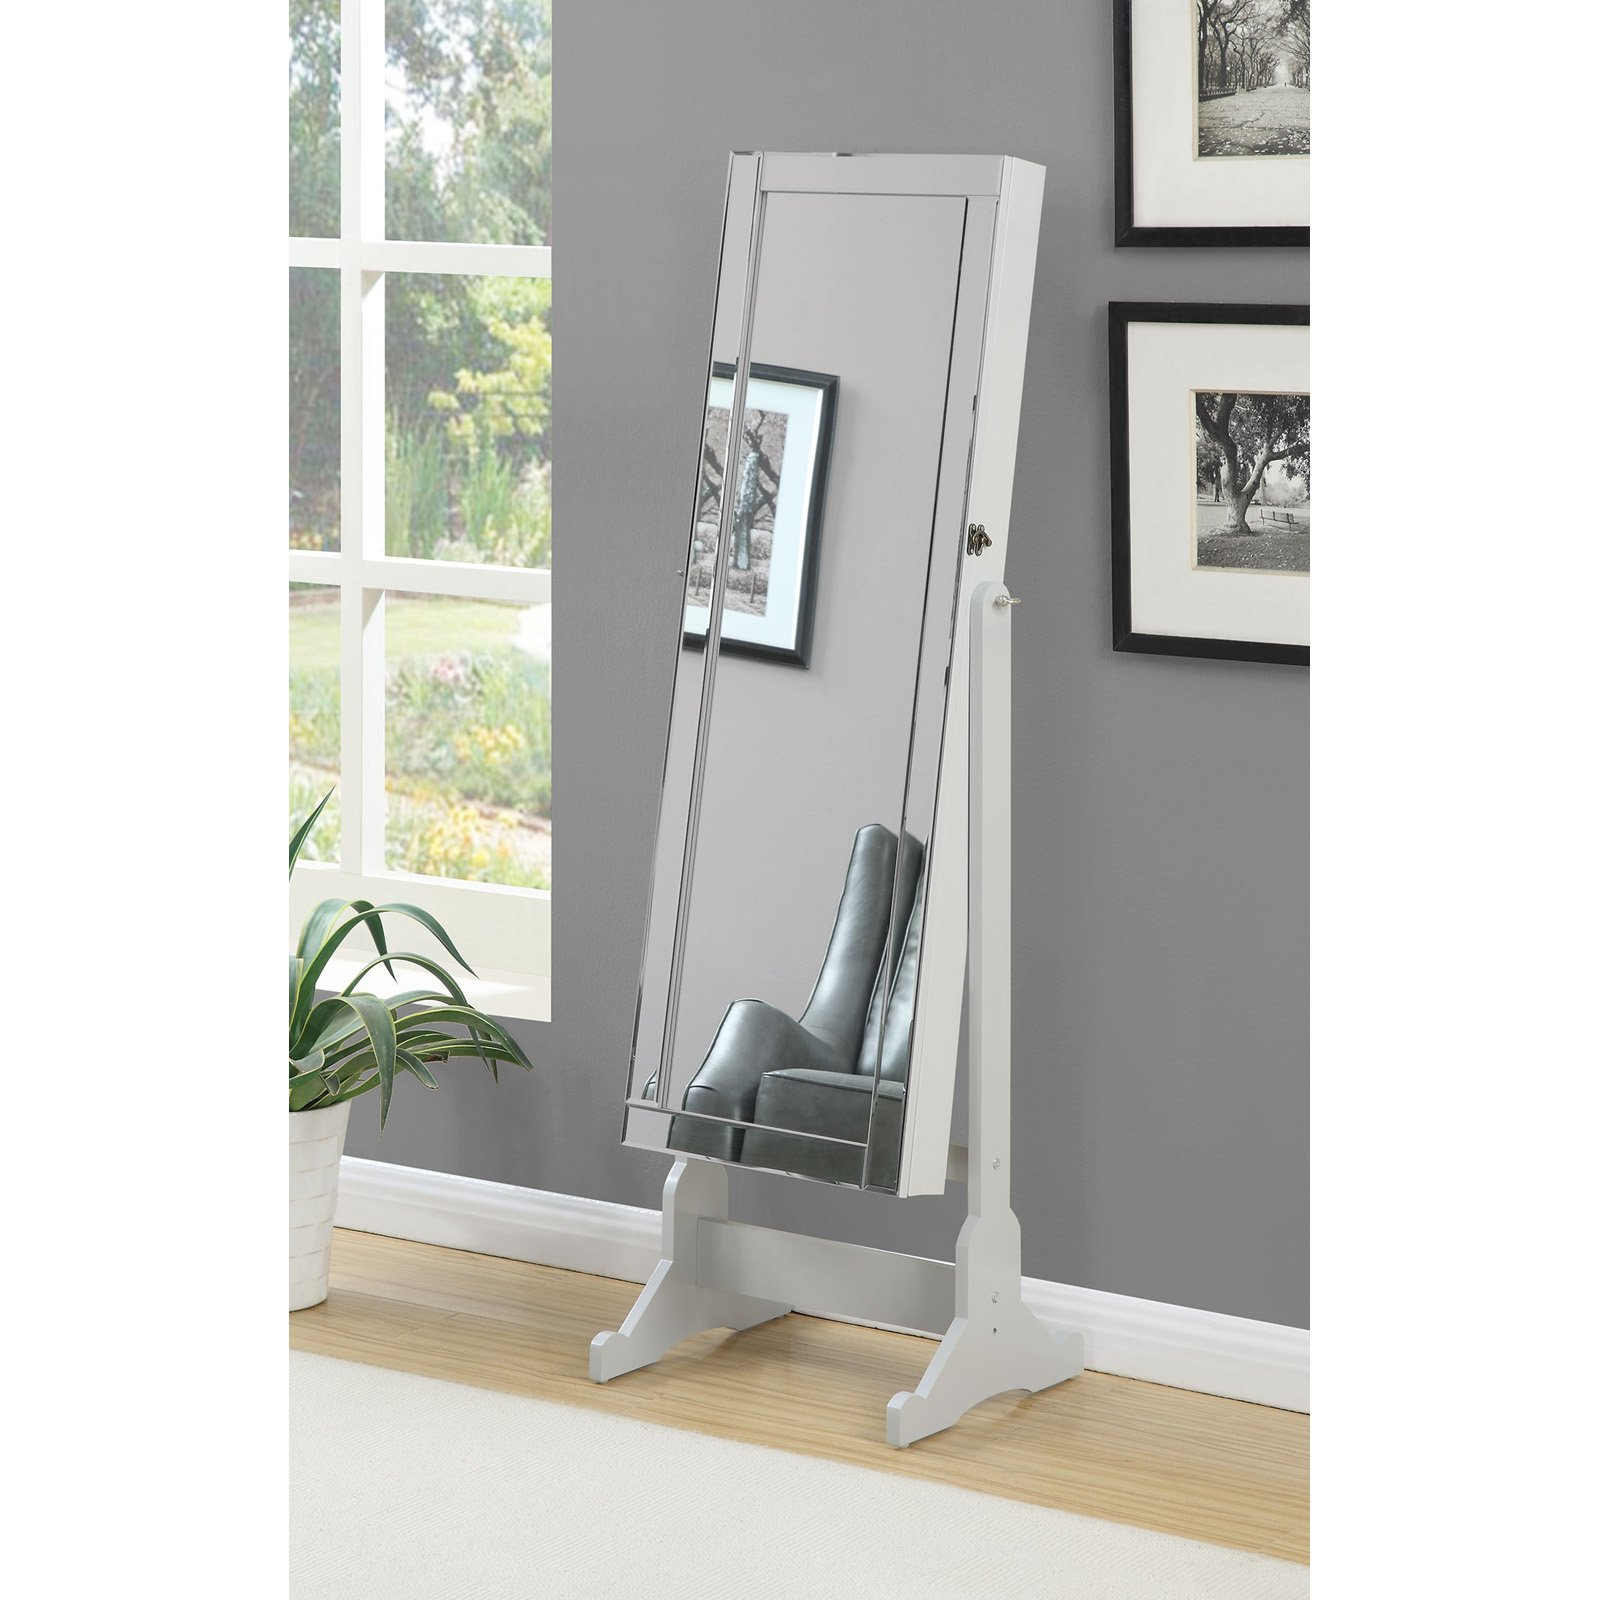 Coaster Company Jewelry Armoire, Dove Grey Frame and Legs